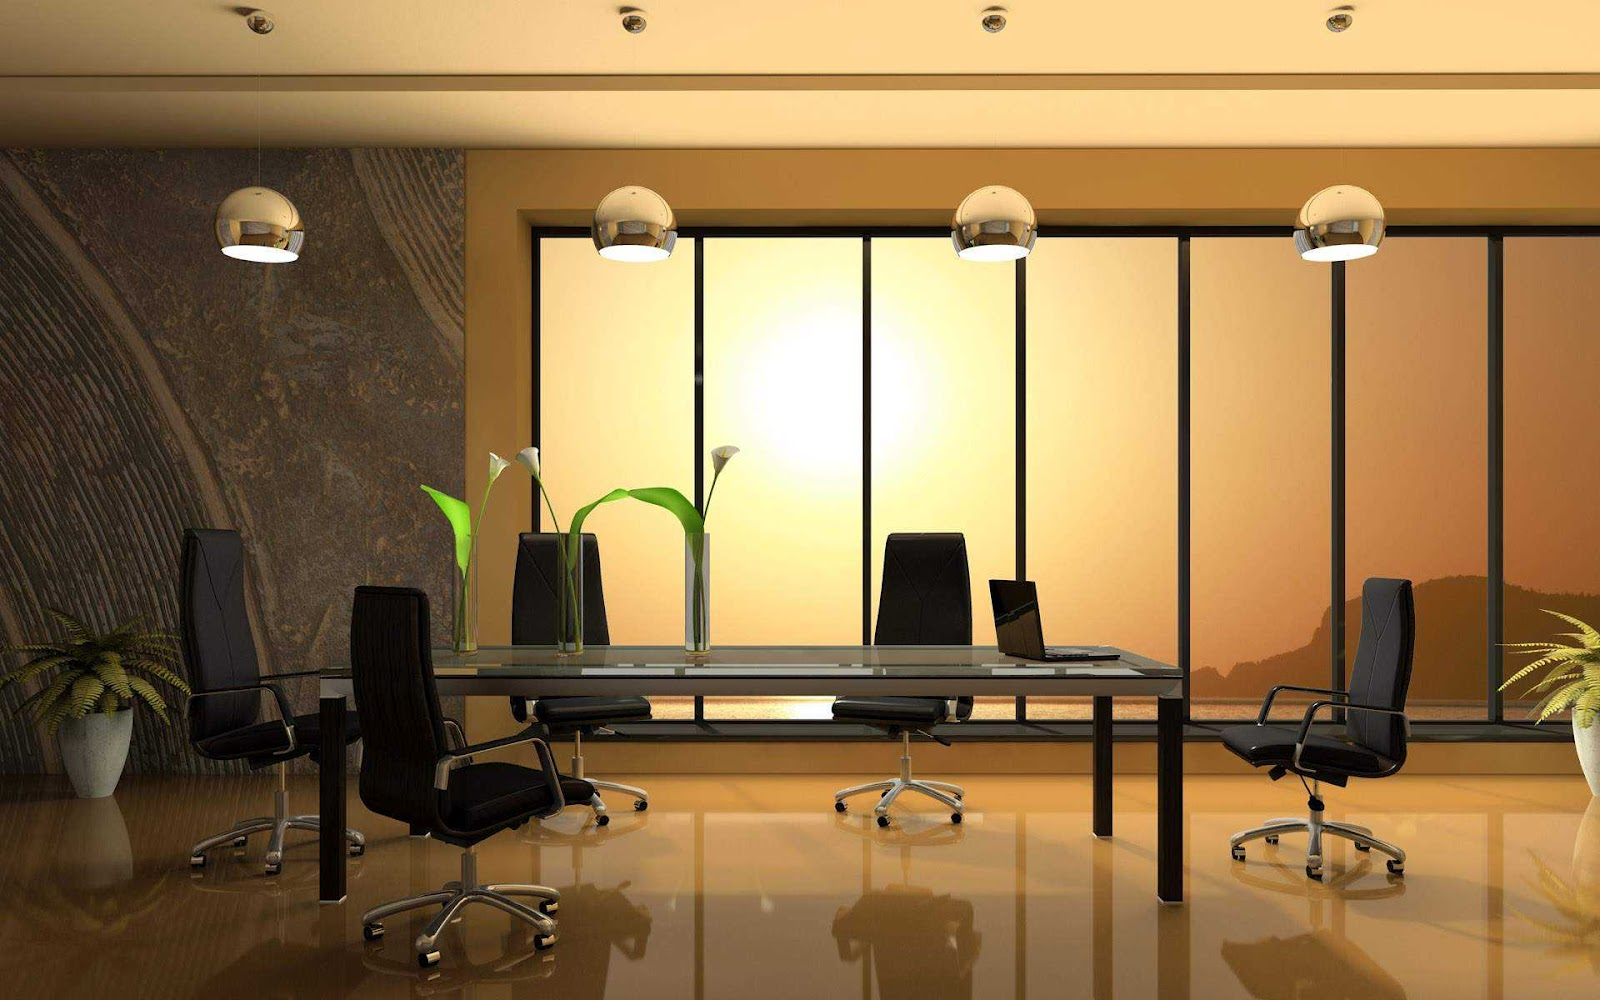 Luxury office office furniture design modern home office modern office furniture luxury office Interior design ideas for home office